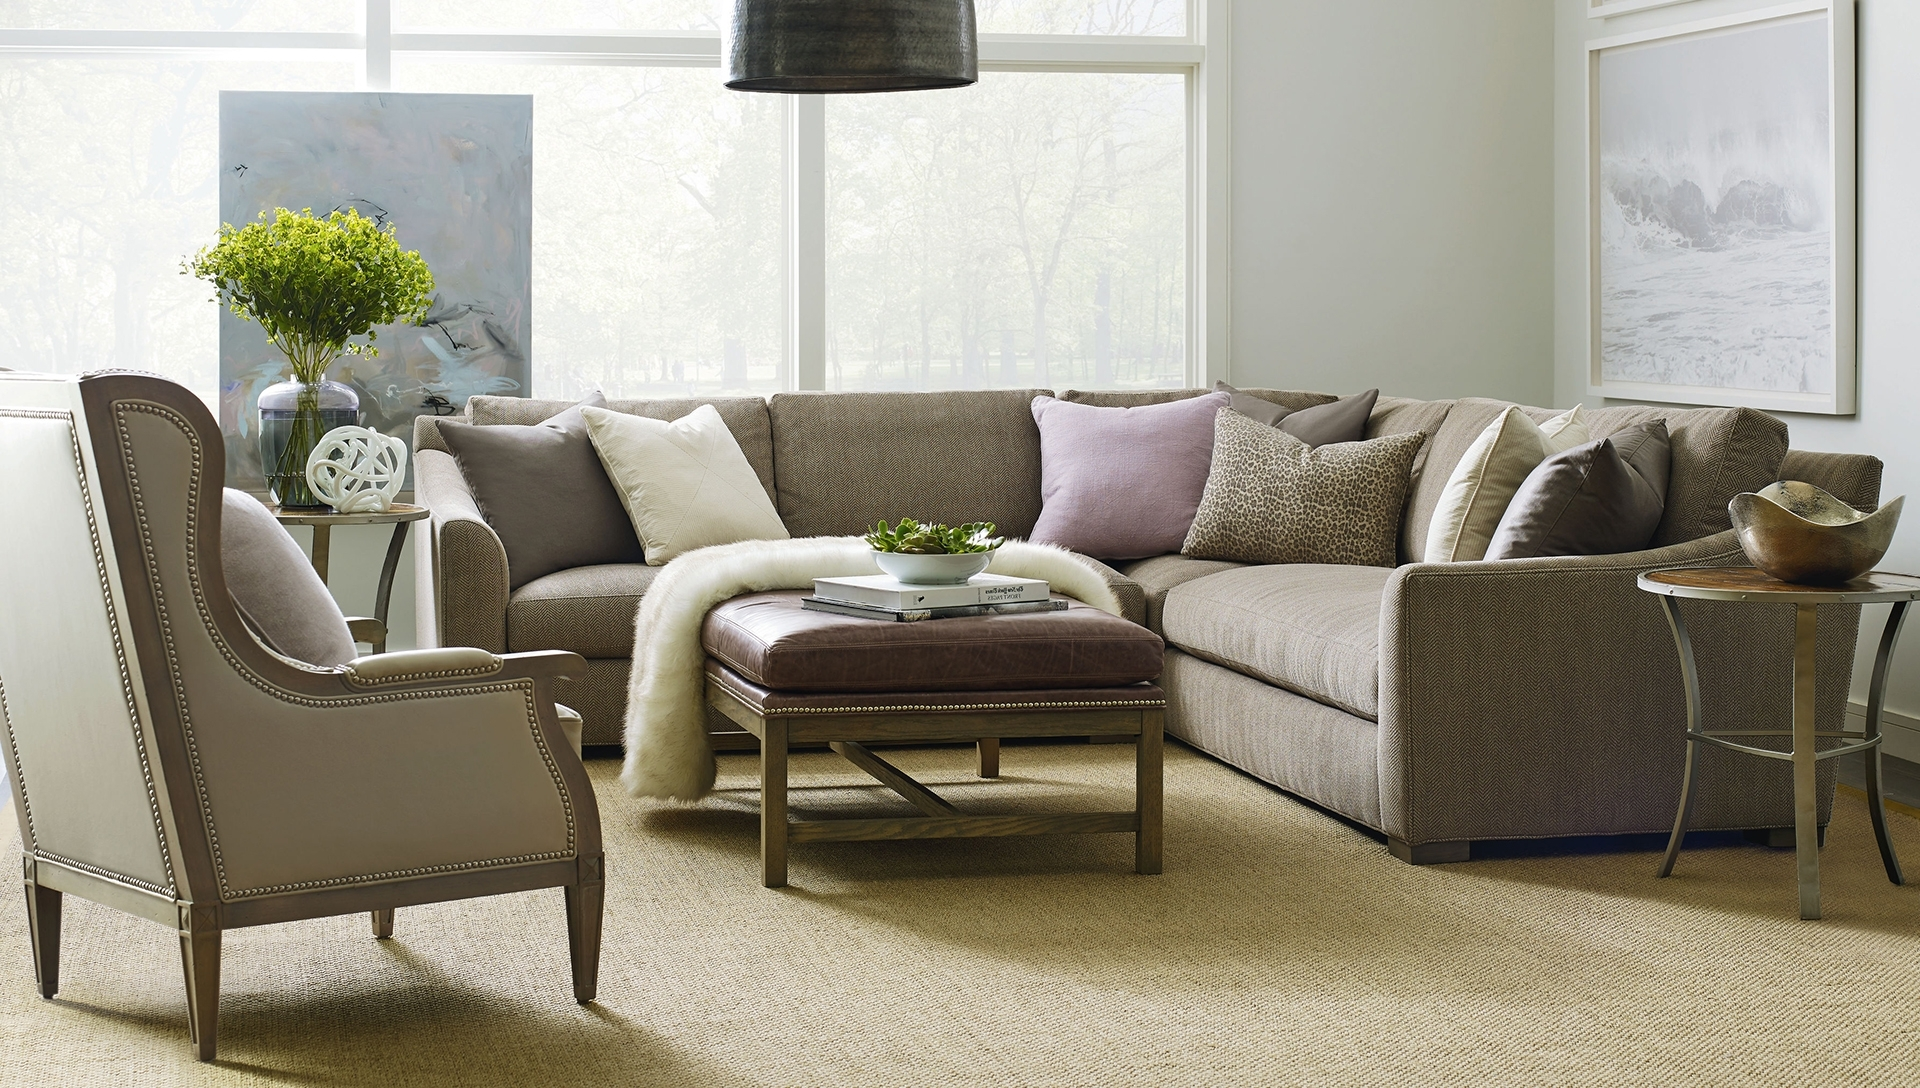 Well Liked Cr Laine Furniture In Grand Rapids Mi Sectional Sofas (View 20 of 20)